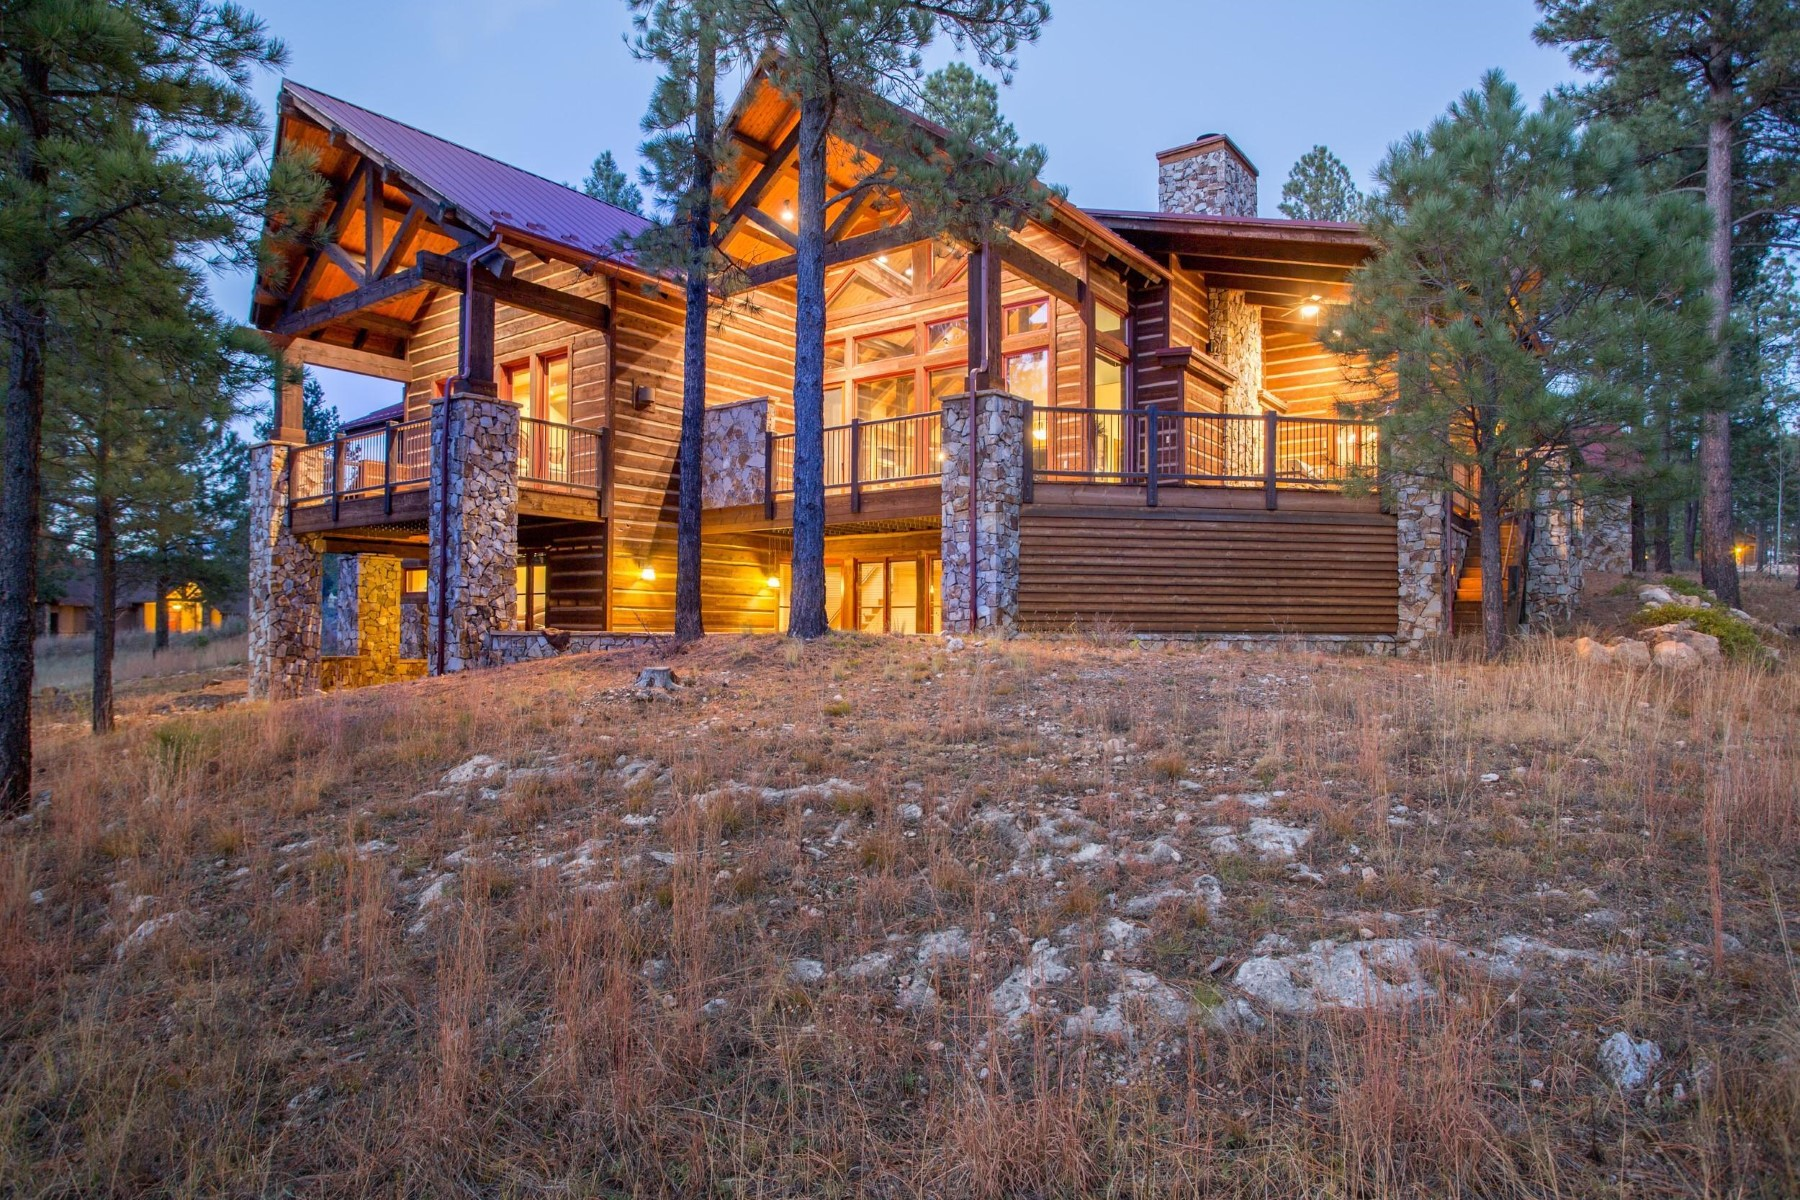 Single Family Home for Sale at Gorgeous Pine Canyon Mountain Retreat 1887 E Marengo CT Flagstaff, Arizona, 86005 United States